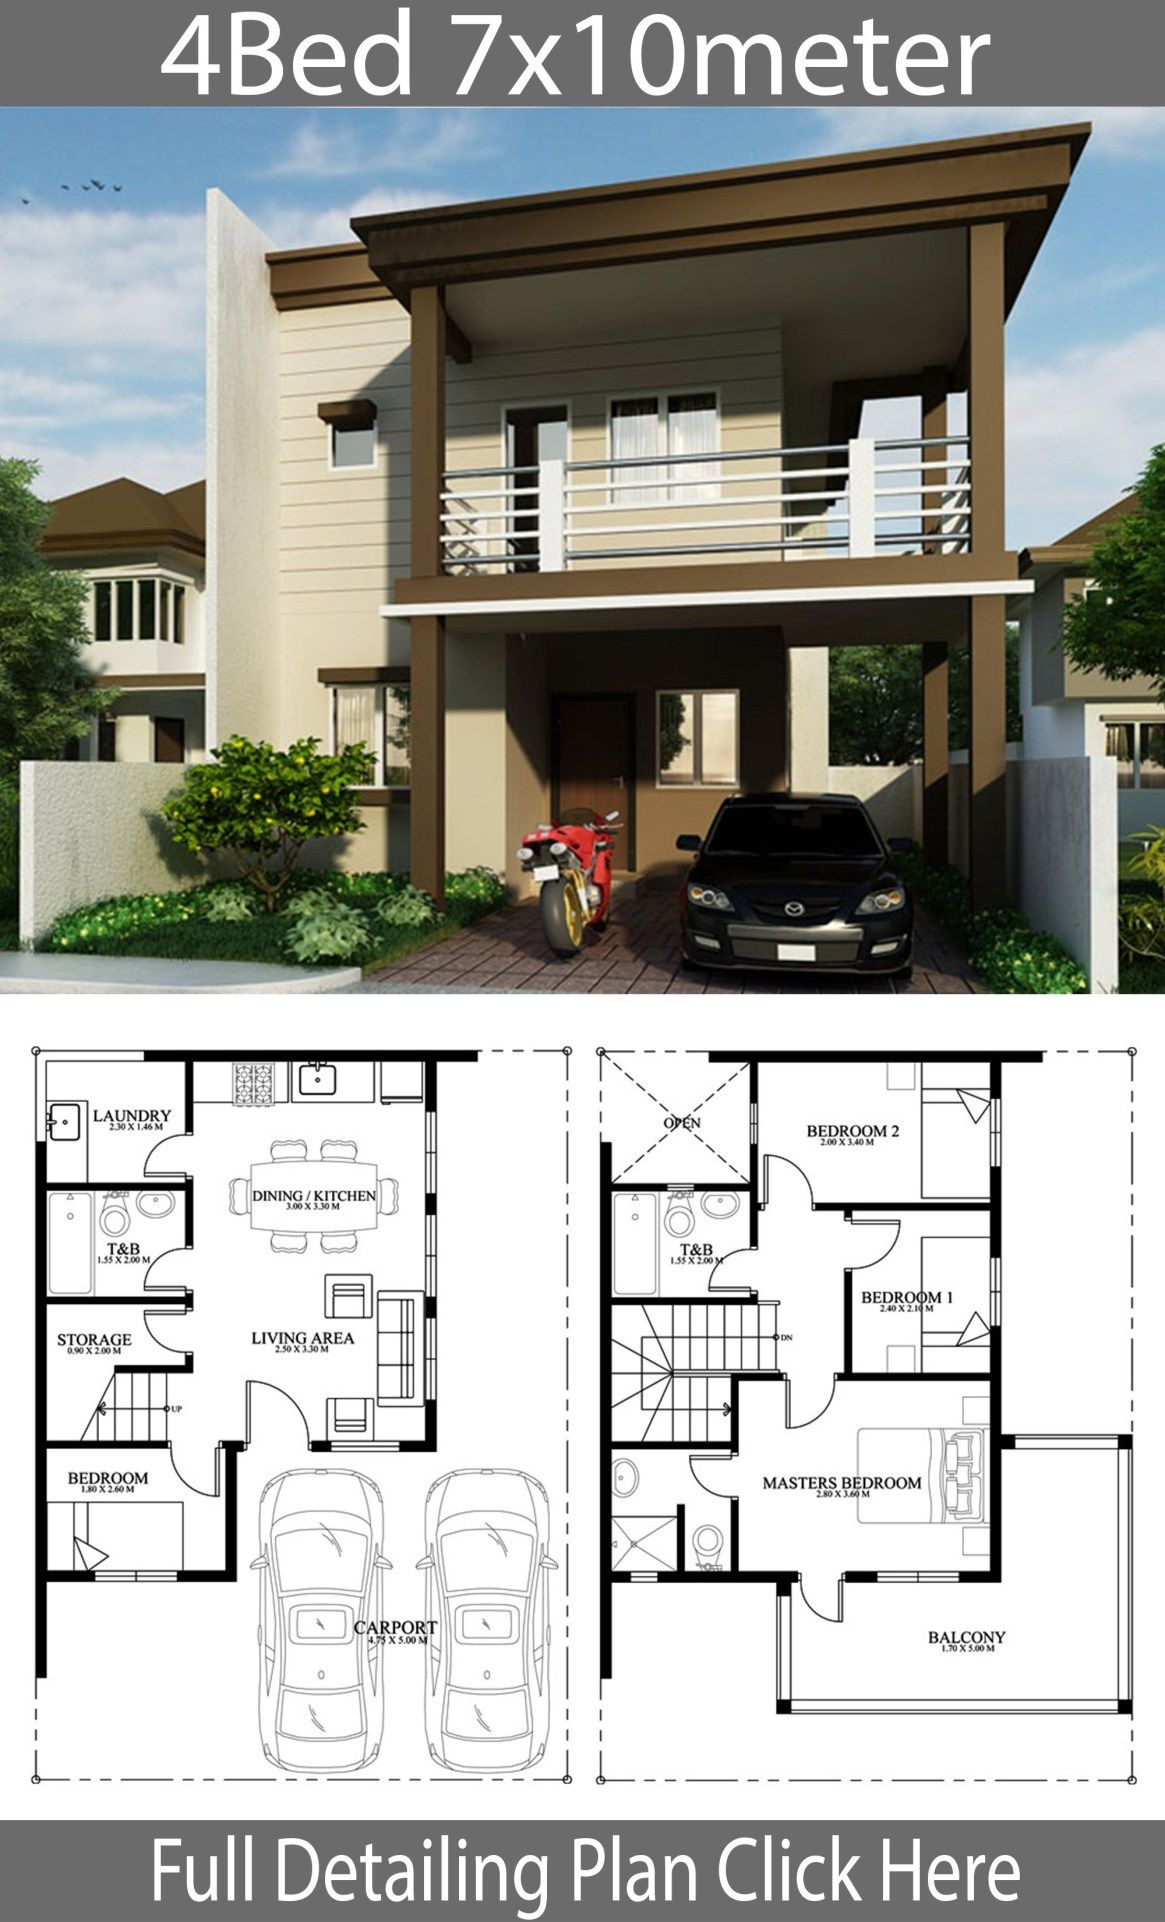 Home Design Plan 7x10m With 4 Bedrooms Home Design With Plansearch Model House Plan House Front Design Home Building Design